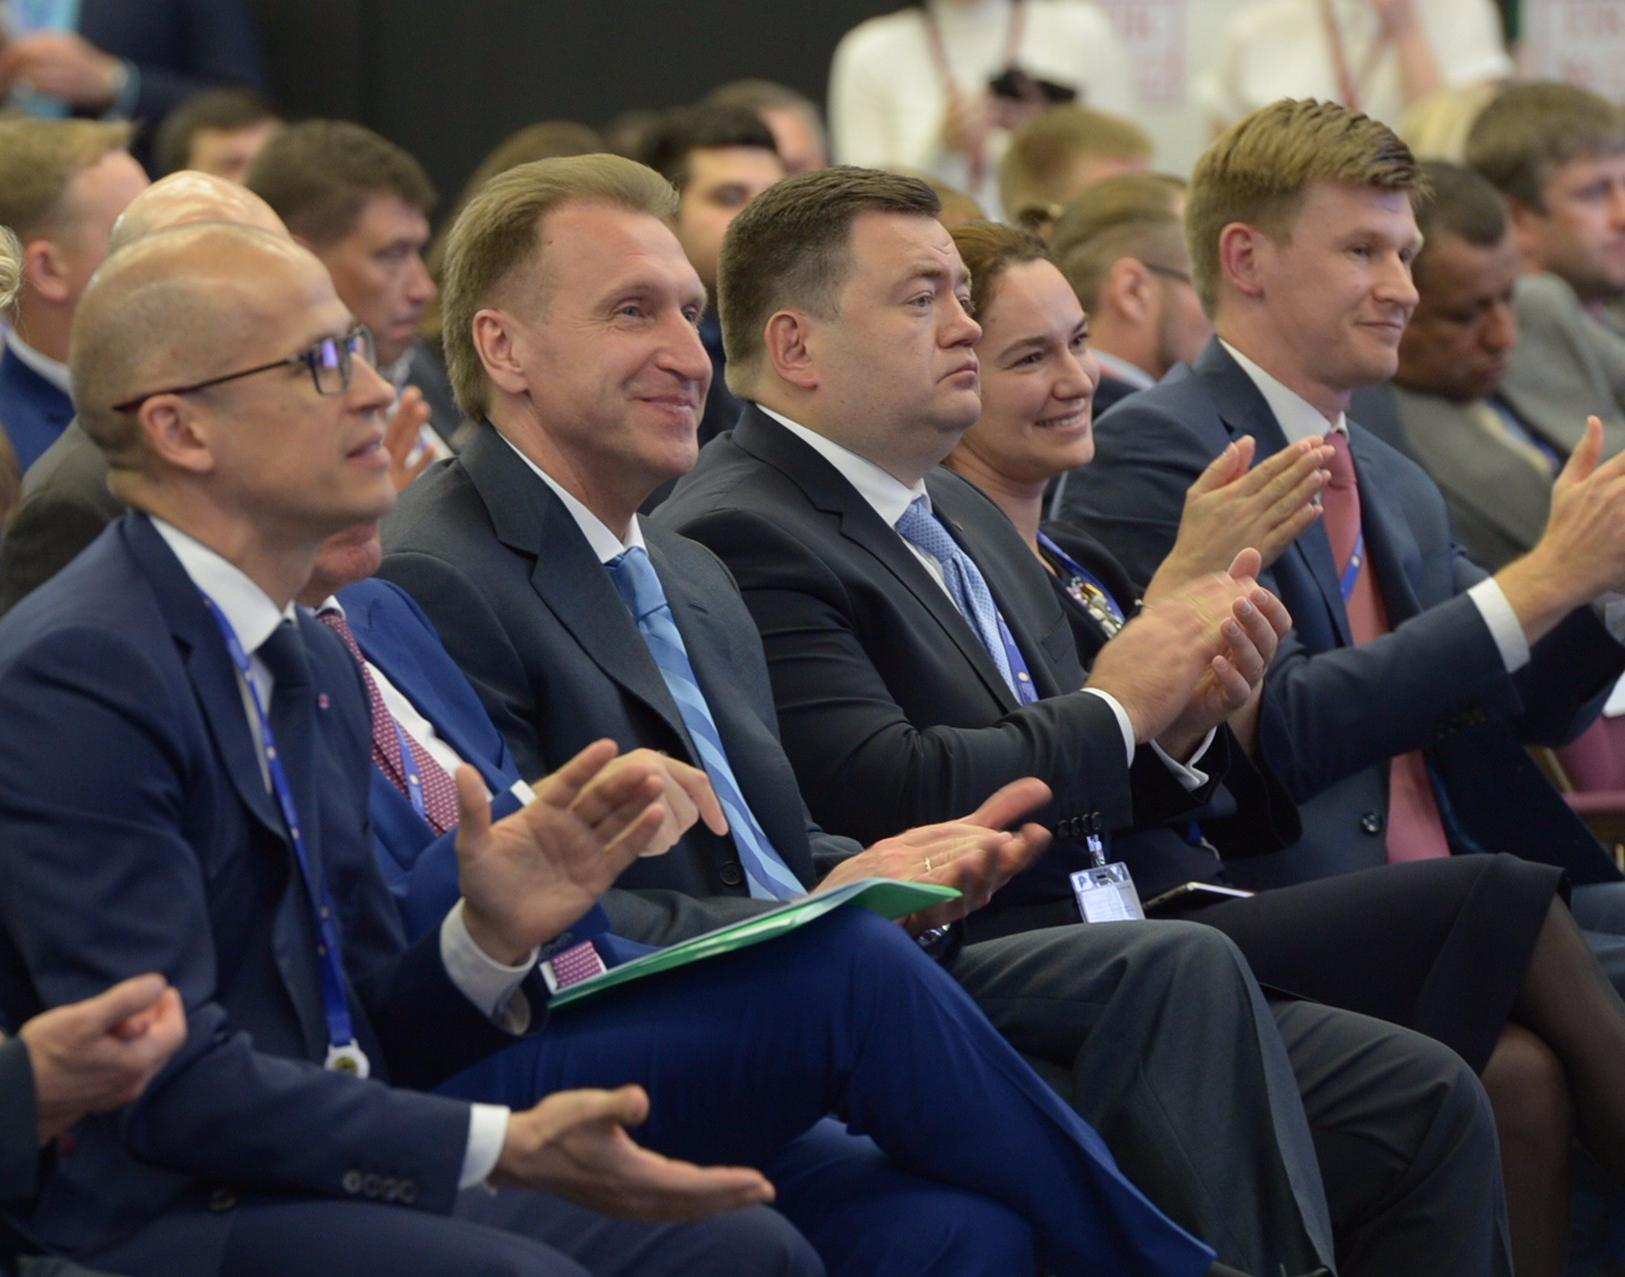 The third Russian Small and Medium-sized Enterprises Forum was held on the eve of the St. Petersburg International Economic Forum